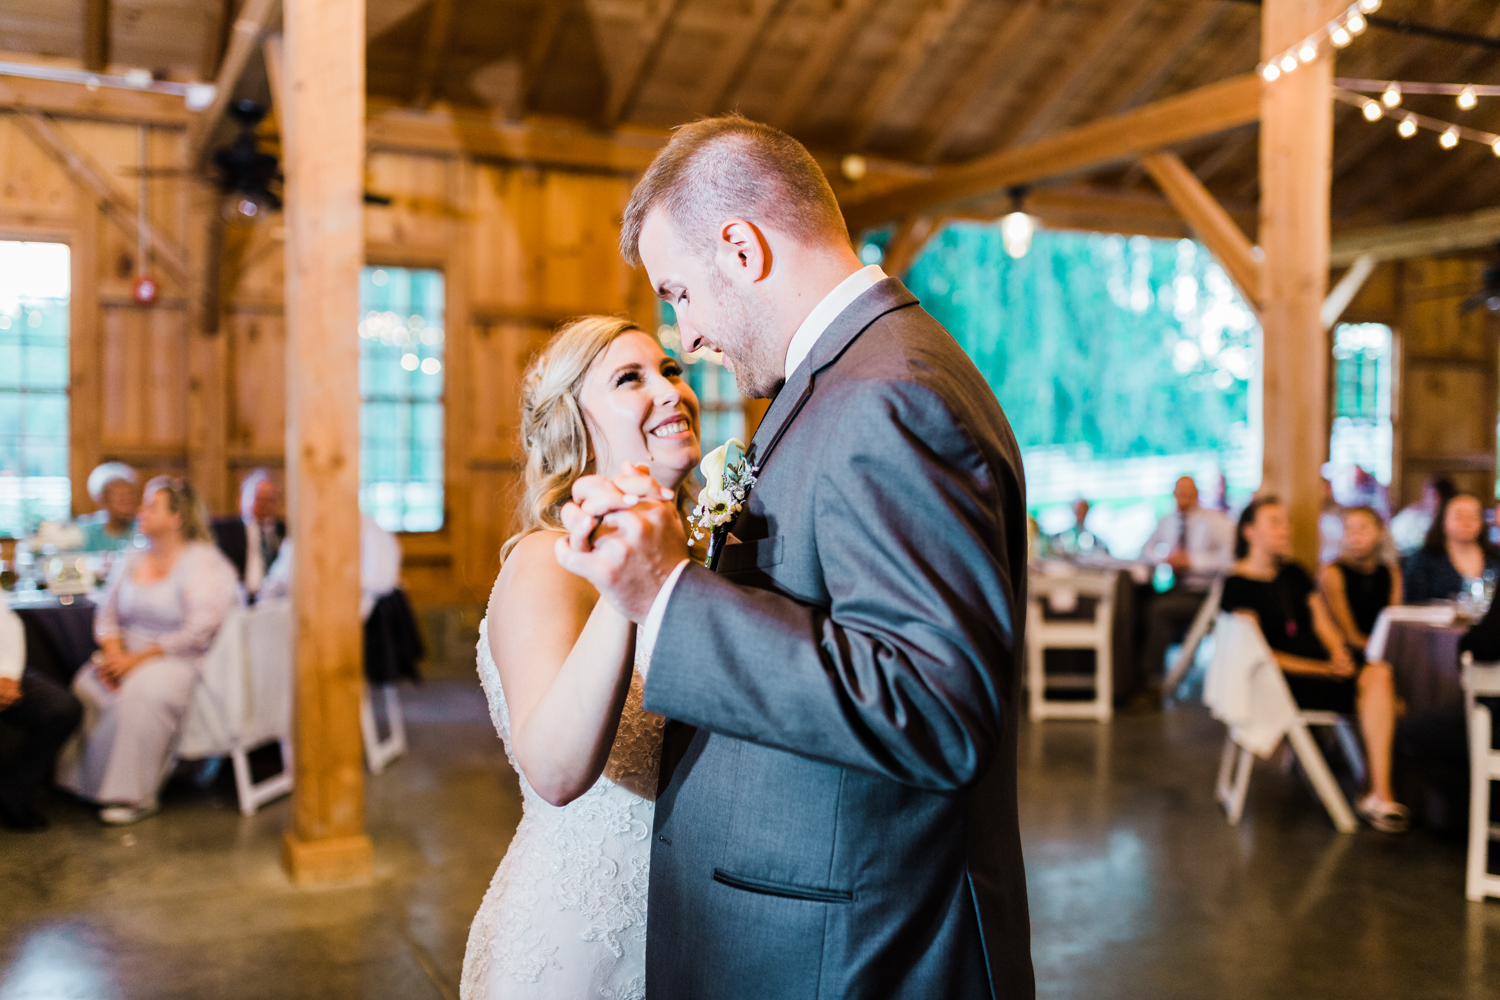 Bride and Groom share their first dance at Pond View Farm in White Hall, MD - best wedding photographer in Maryland